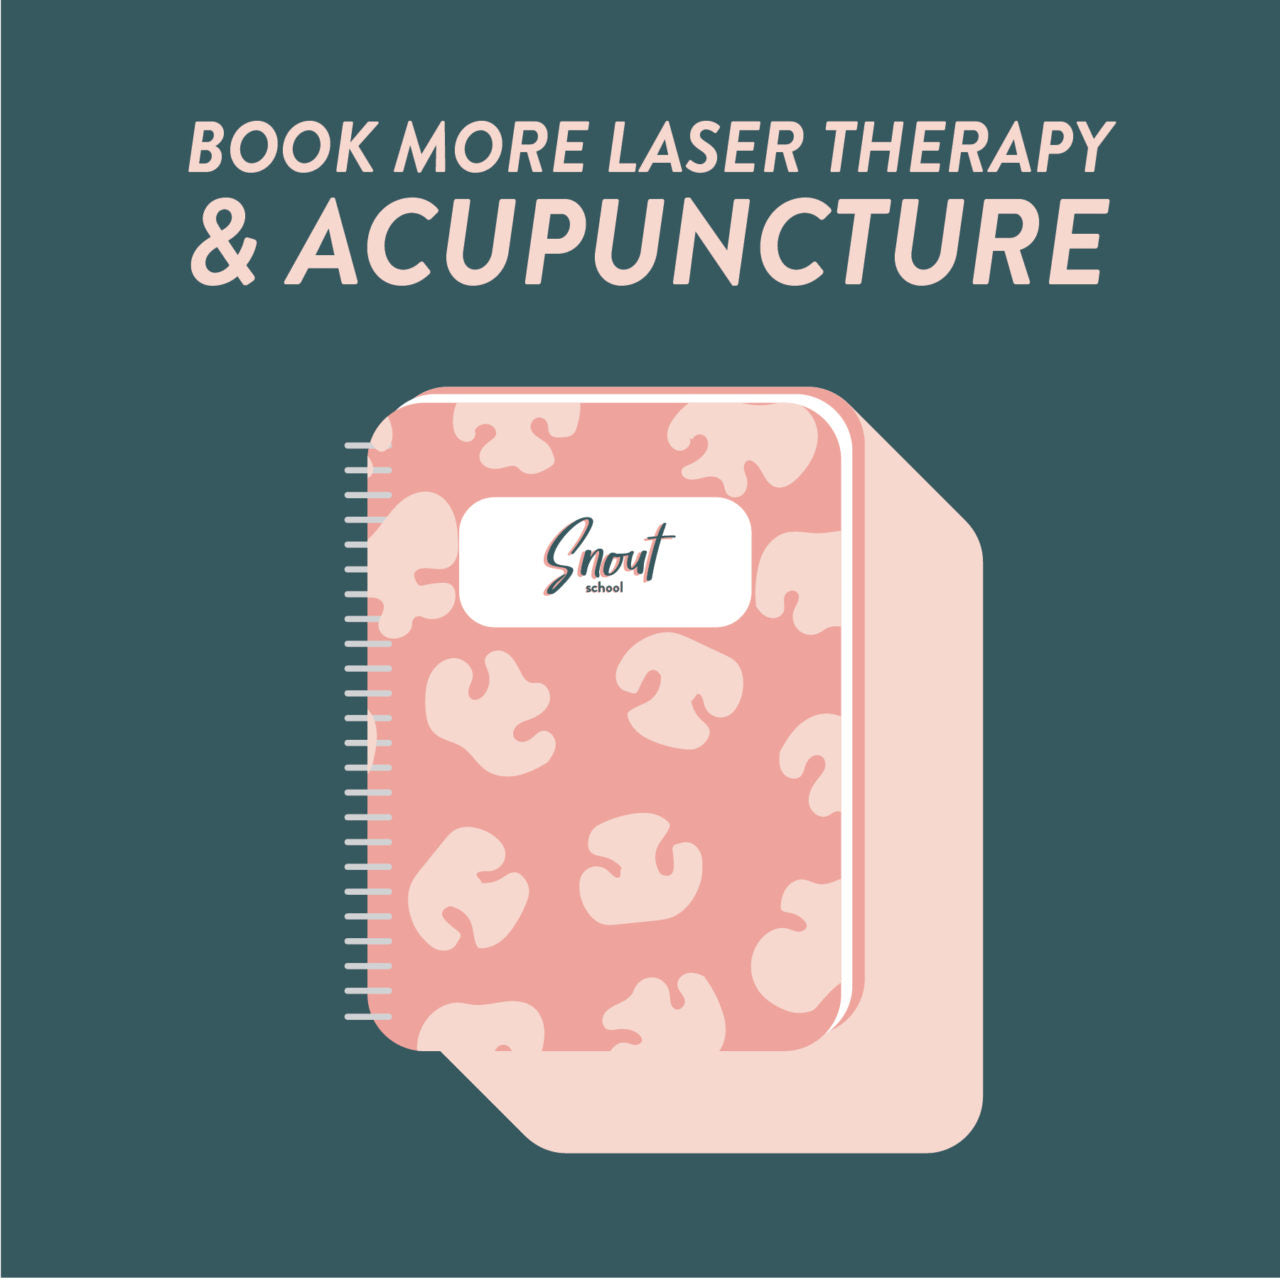 MARKETING PLAN: BOOK MORE LASER THERAPY & ACUPUNCTURE